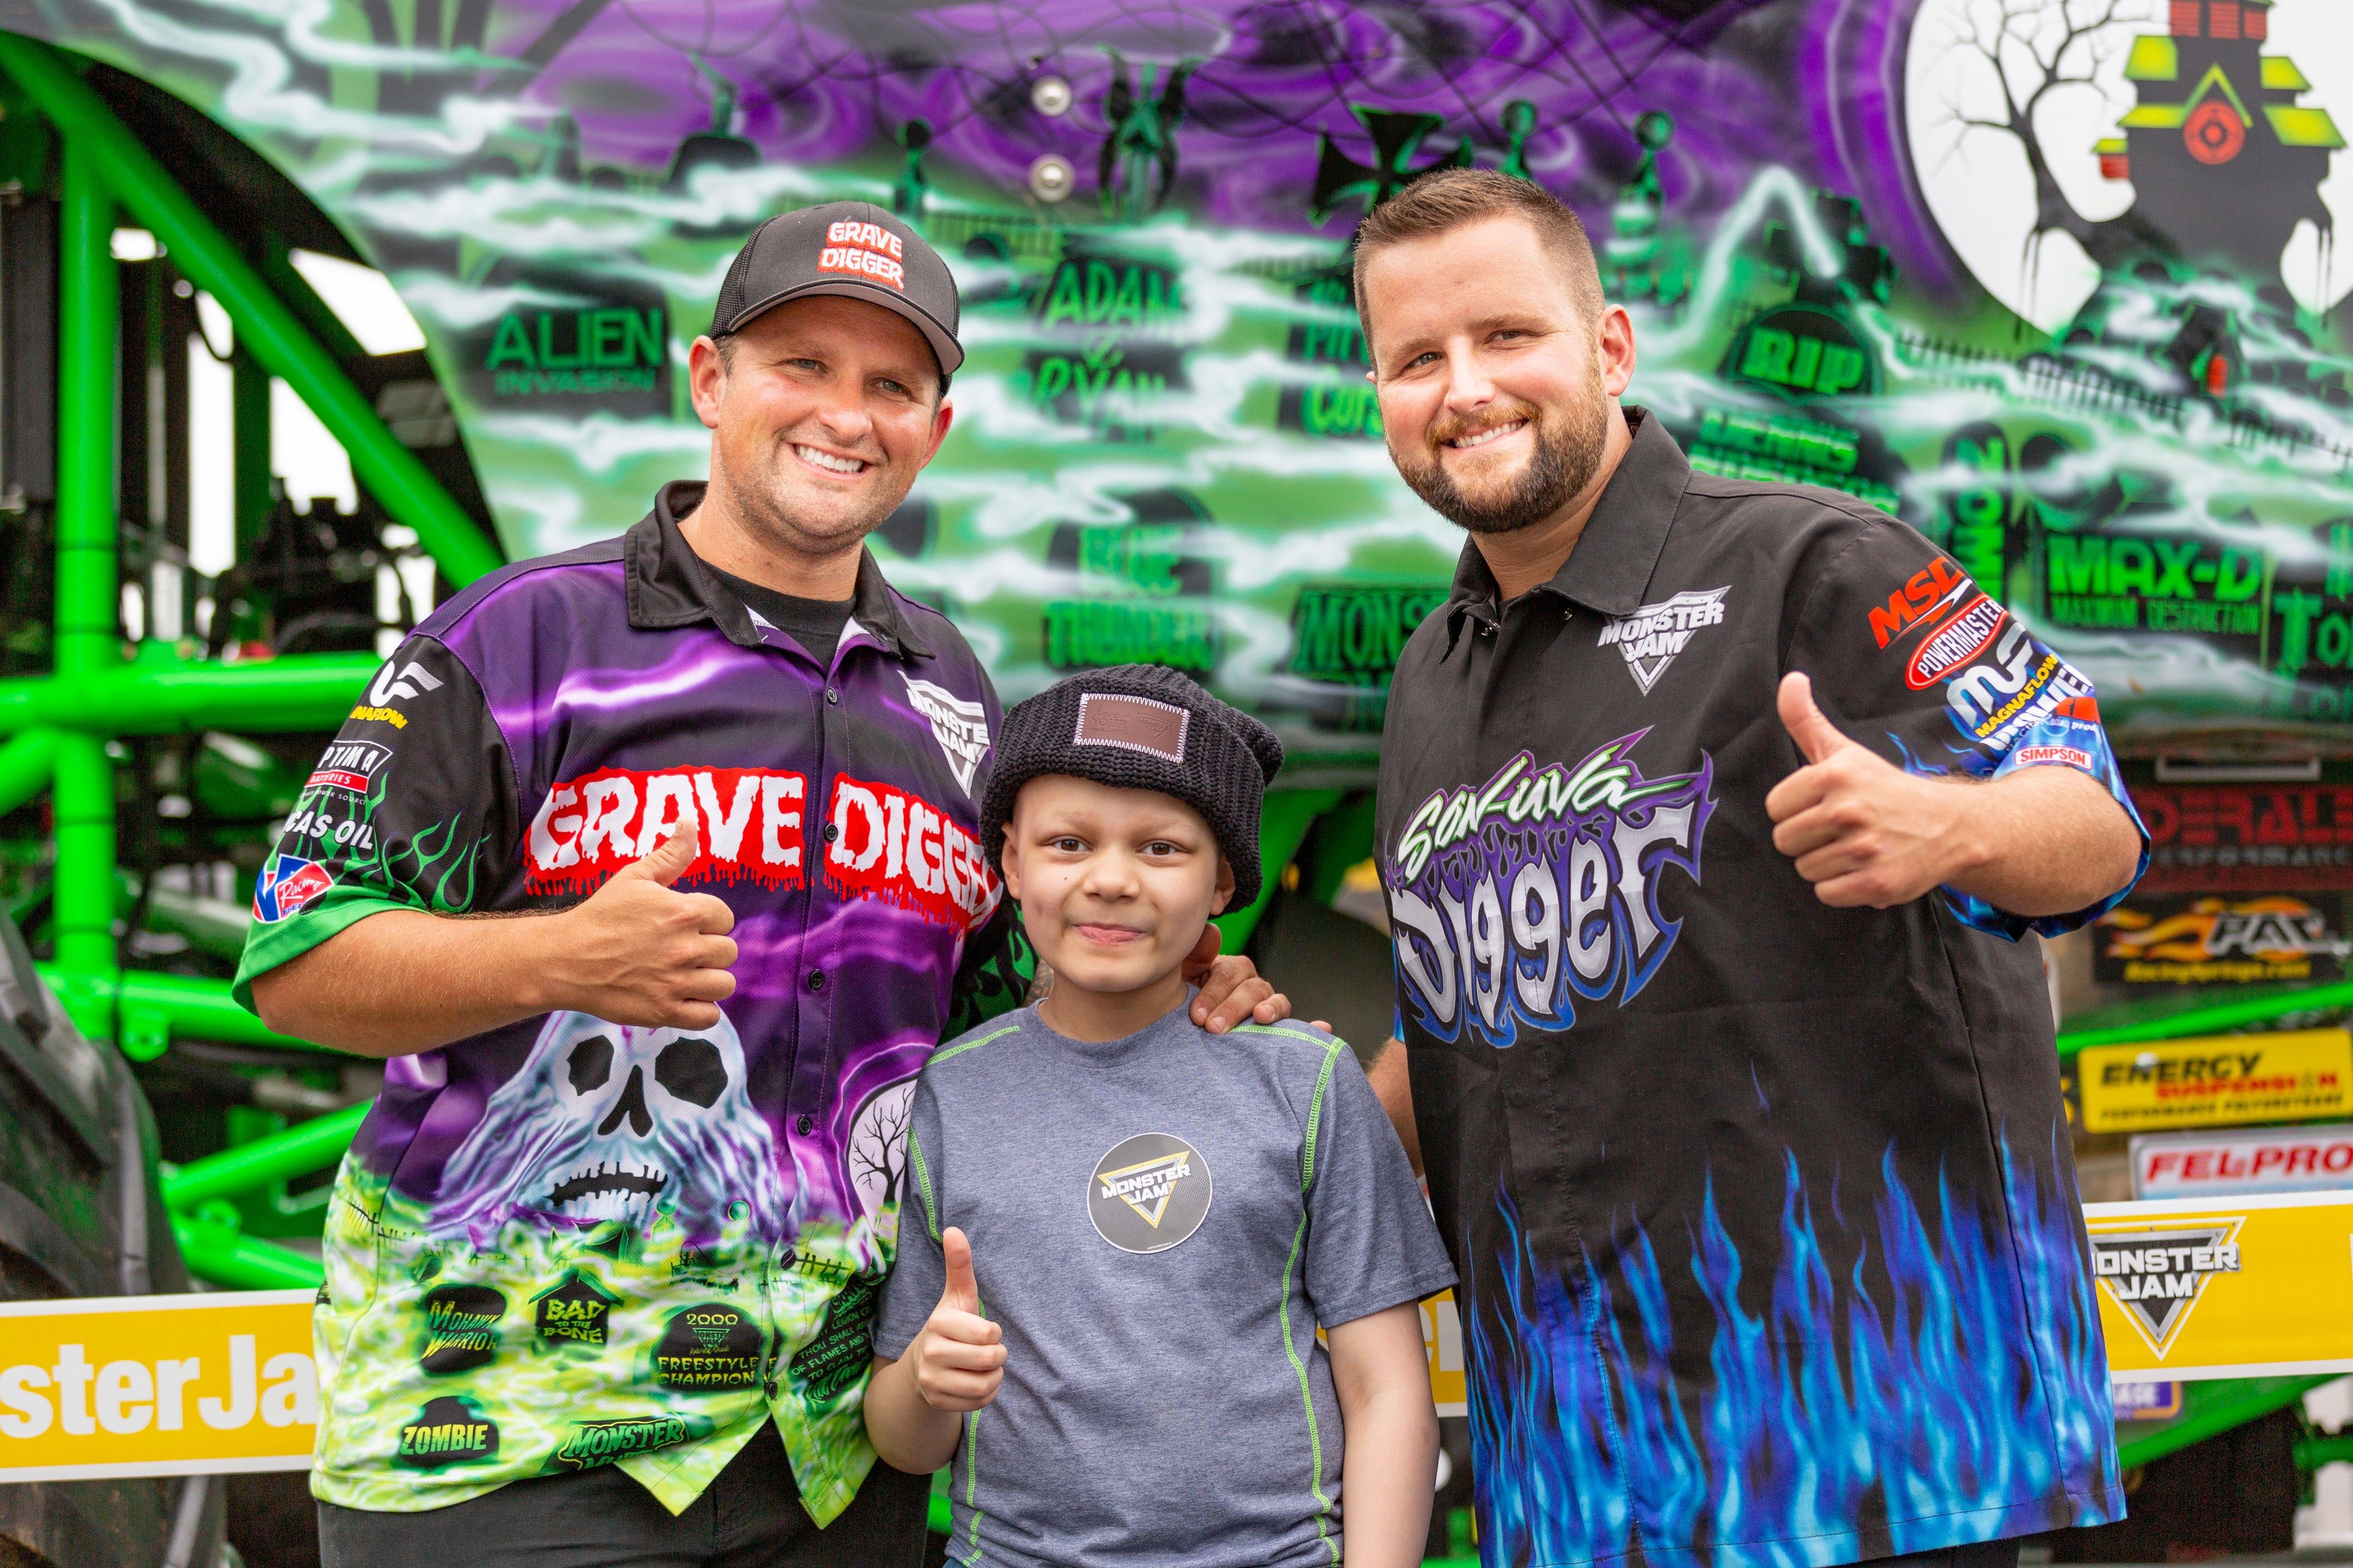 7832d186c8e35 MONSTER JAM® Announces Partnership To Fight Pediatric Cancer With  Minneapolis-based Love Your Melon